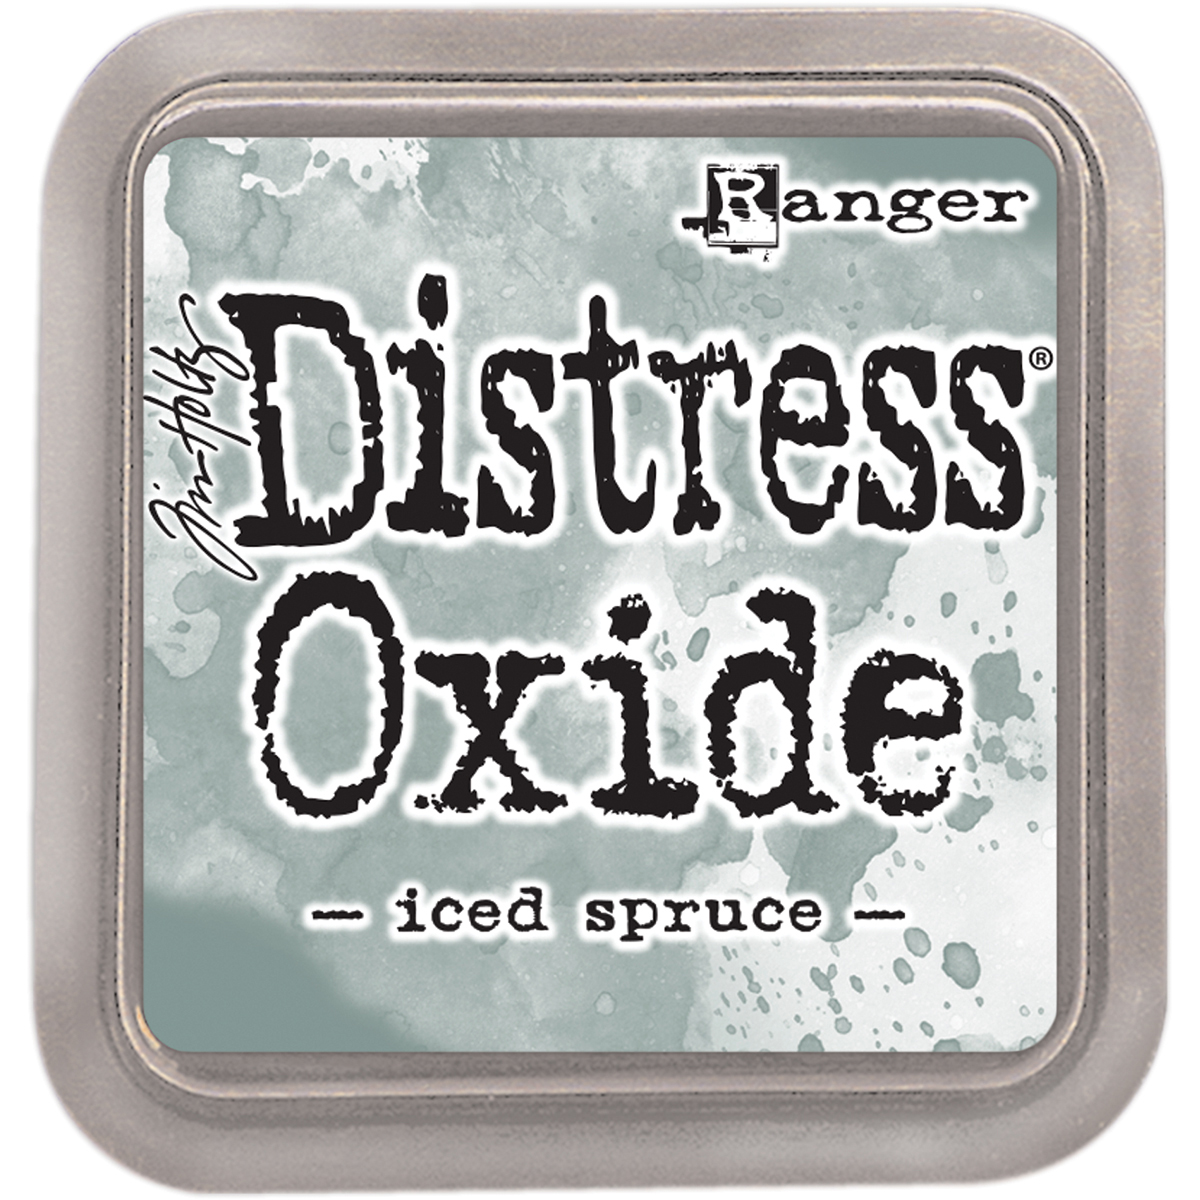 Tim Holtz Distress Oxides Ink Pad-Iced Spruce